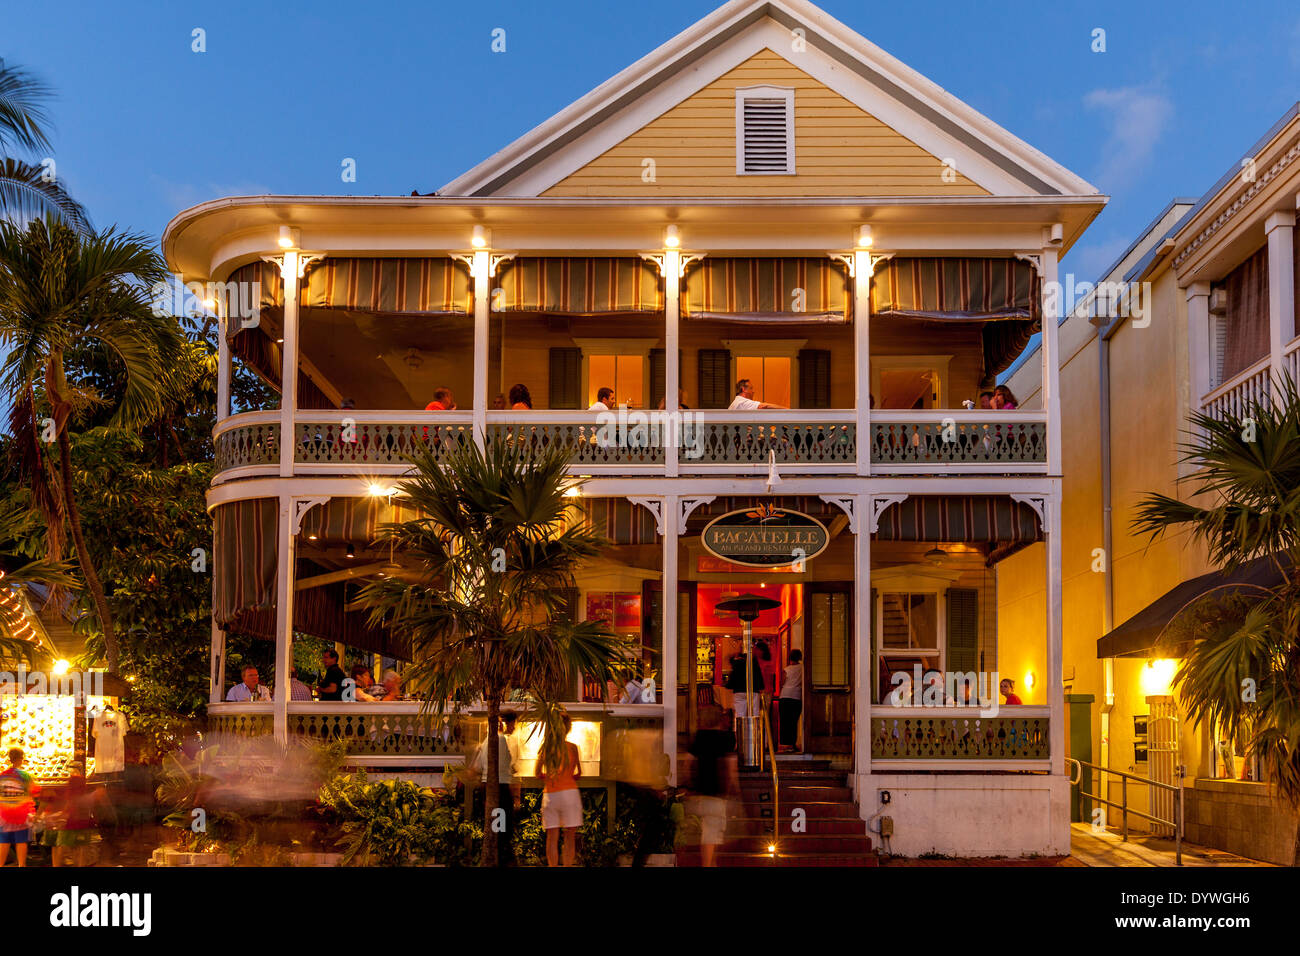 Bagatelle And Key West Stock Photos & Bagatelle And Key West Stock ...